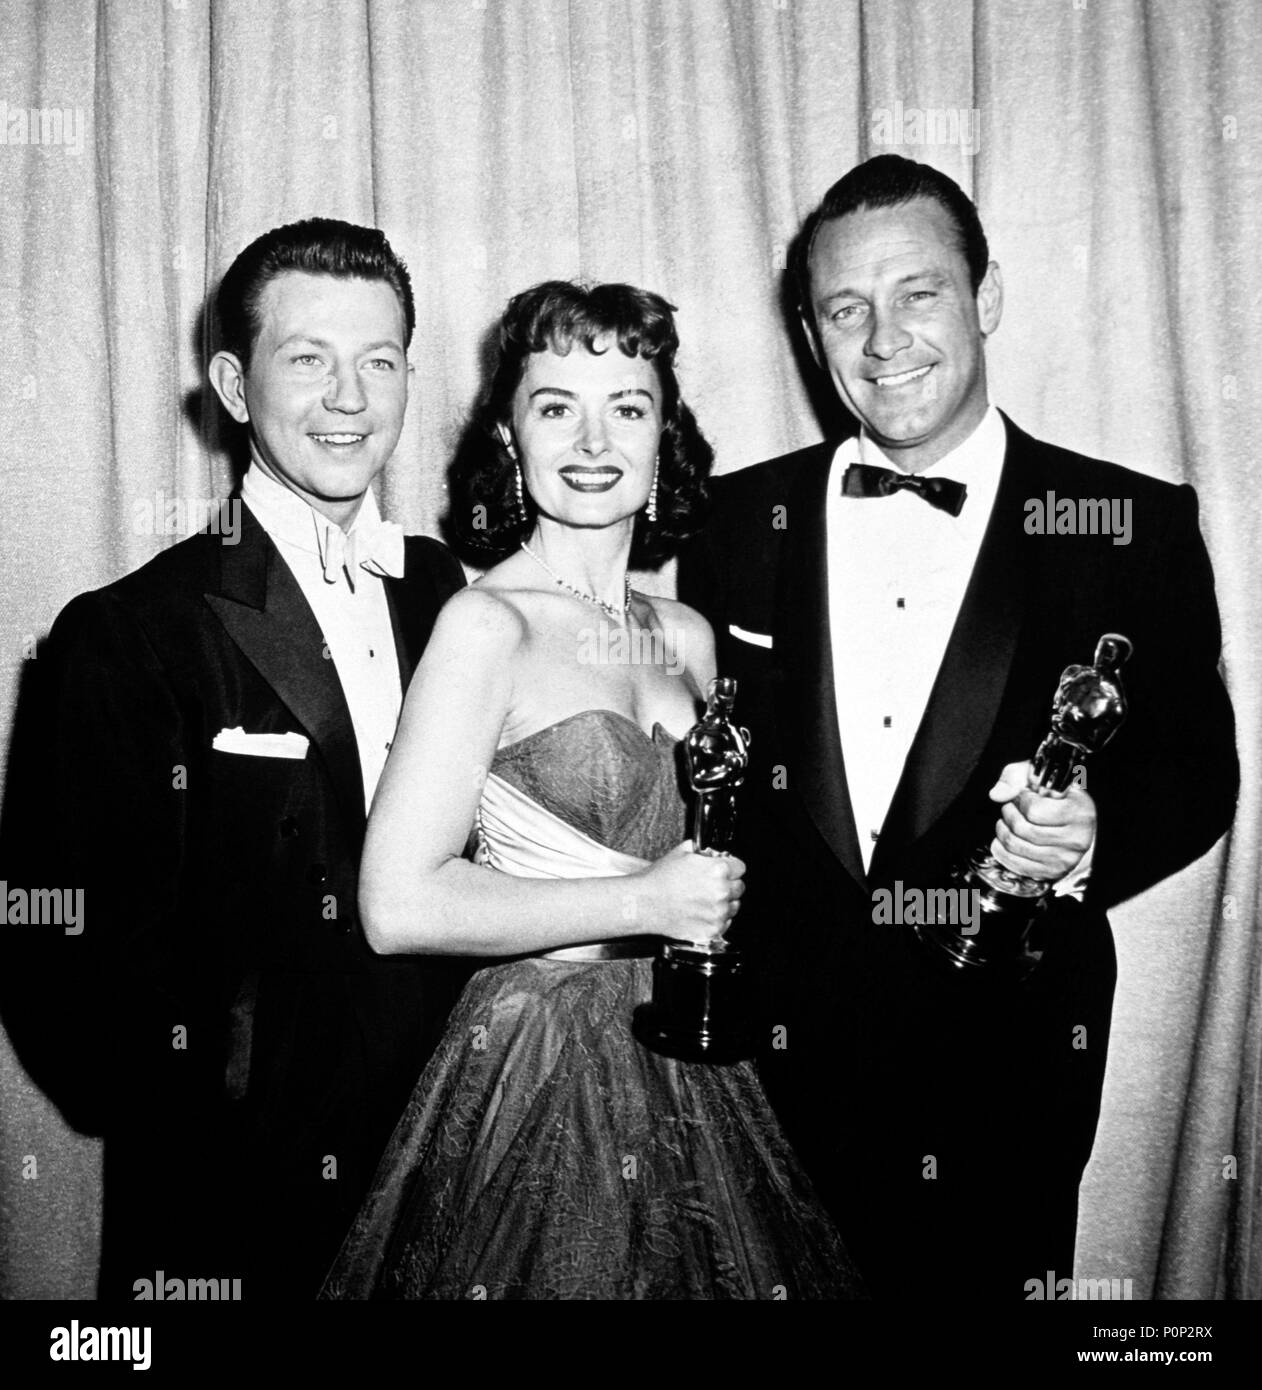 "Description: 26th Academy Awards (1954). Donna Reed, best actress in a supporting role for ""From Here to Eternety"". William holden, best actor for ""Stalag 17"". Donald O'Connor accompanies them..  Year: 1954.  Stars: DONALD O'CONNOR; DONNA REED; WILLIAM HOLDEN. Stock Photo"